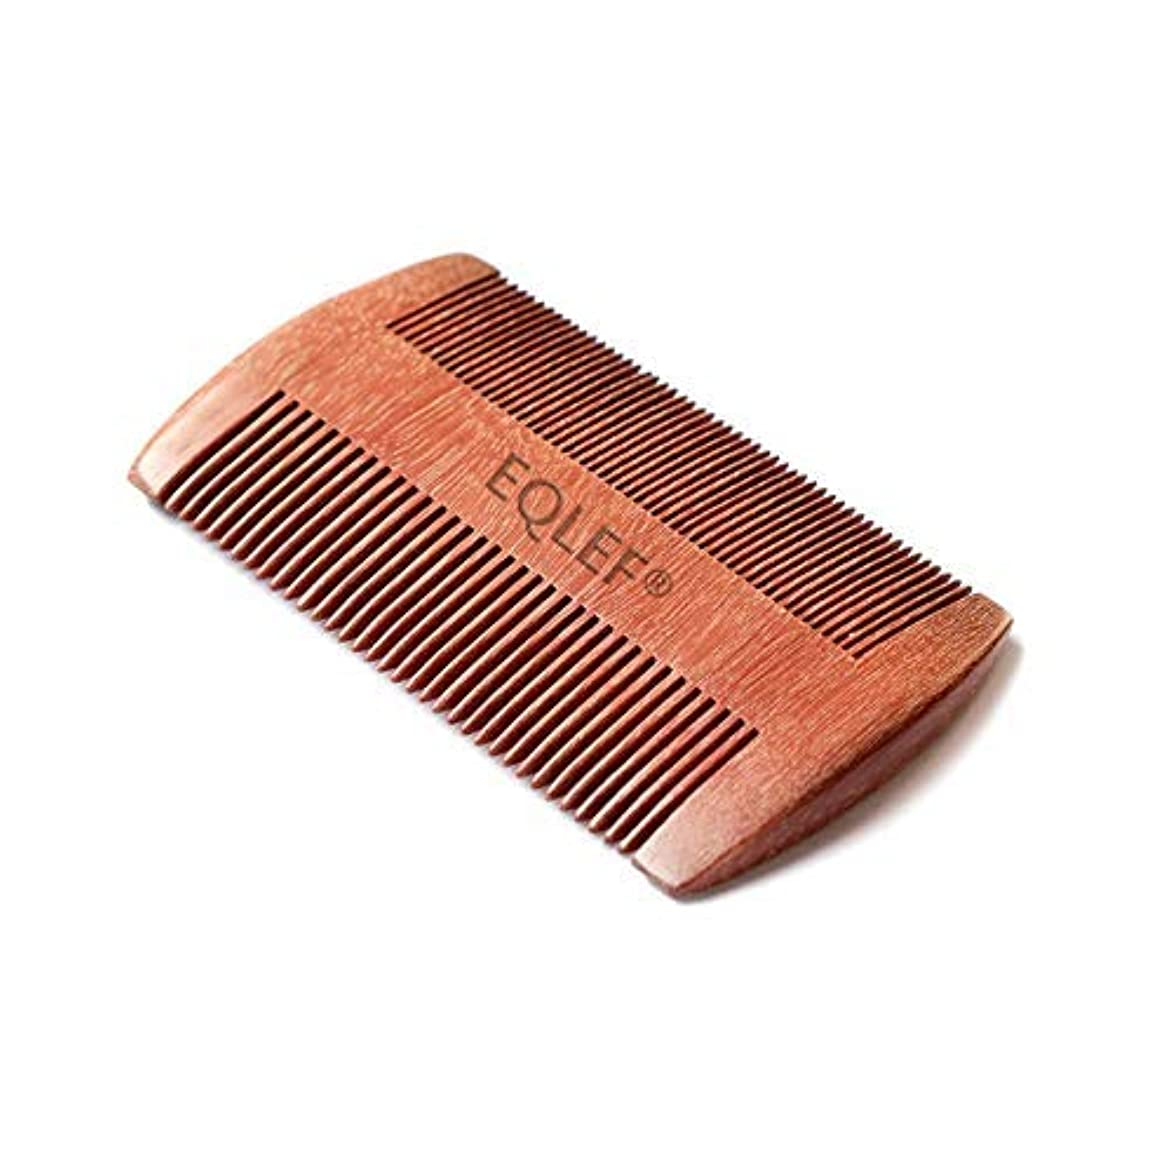 ラバすぐにとまり木EQLEF? Red sandalwood no static handmade comb, Pocket comb (beard) [並行輸入品]